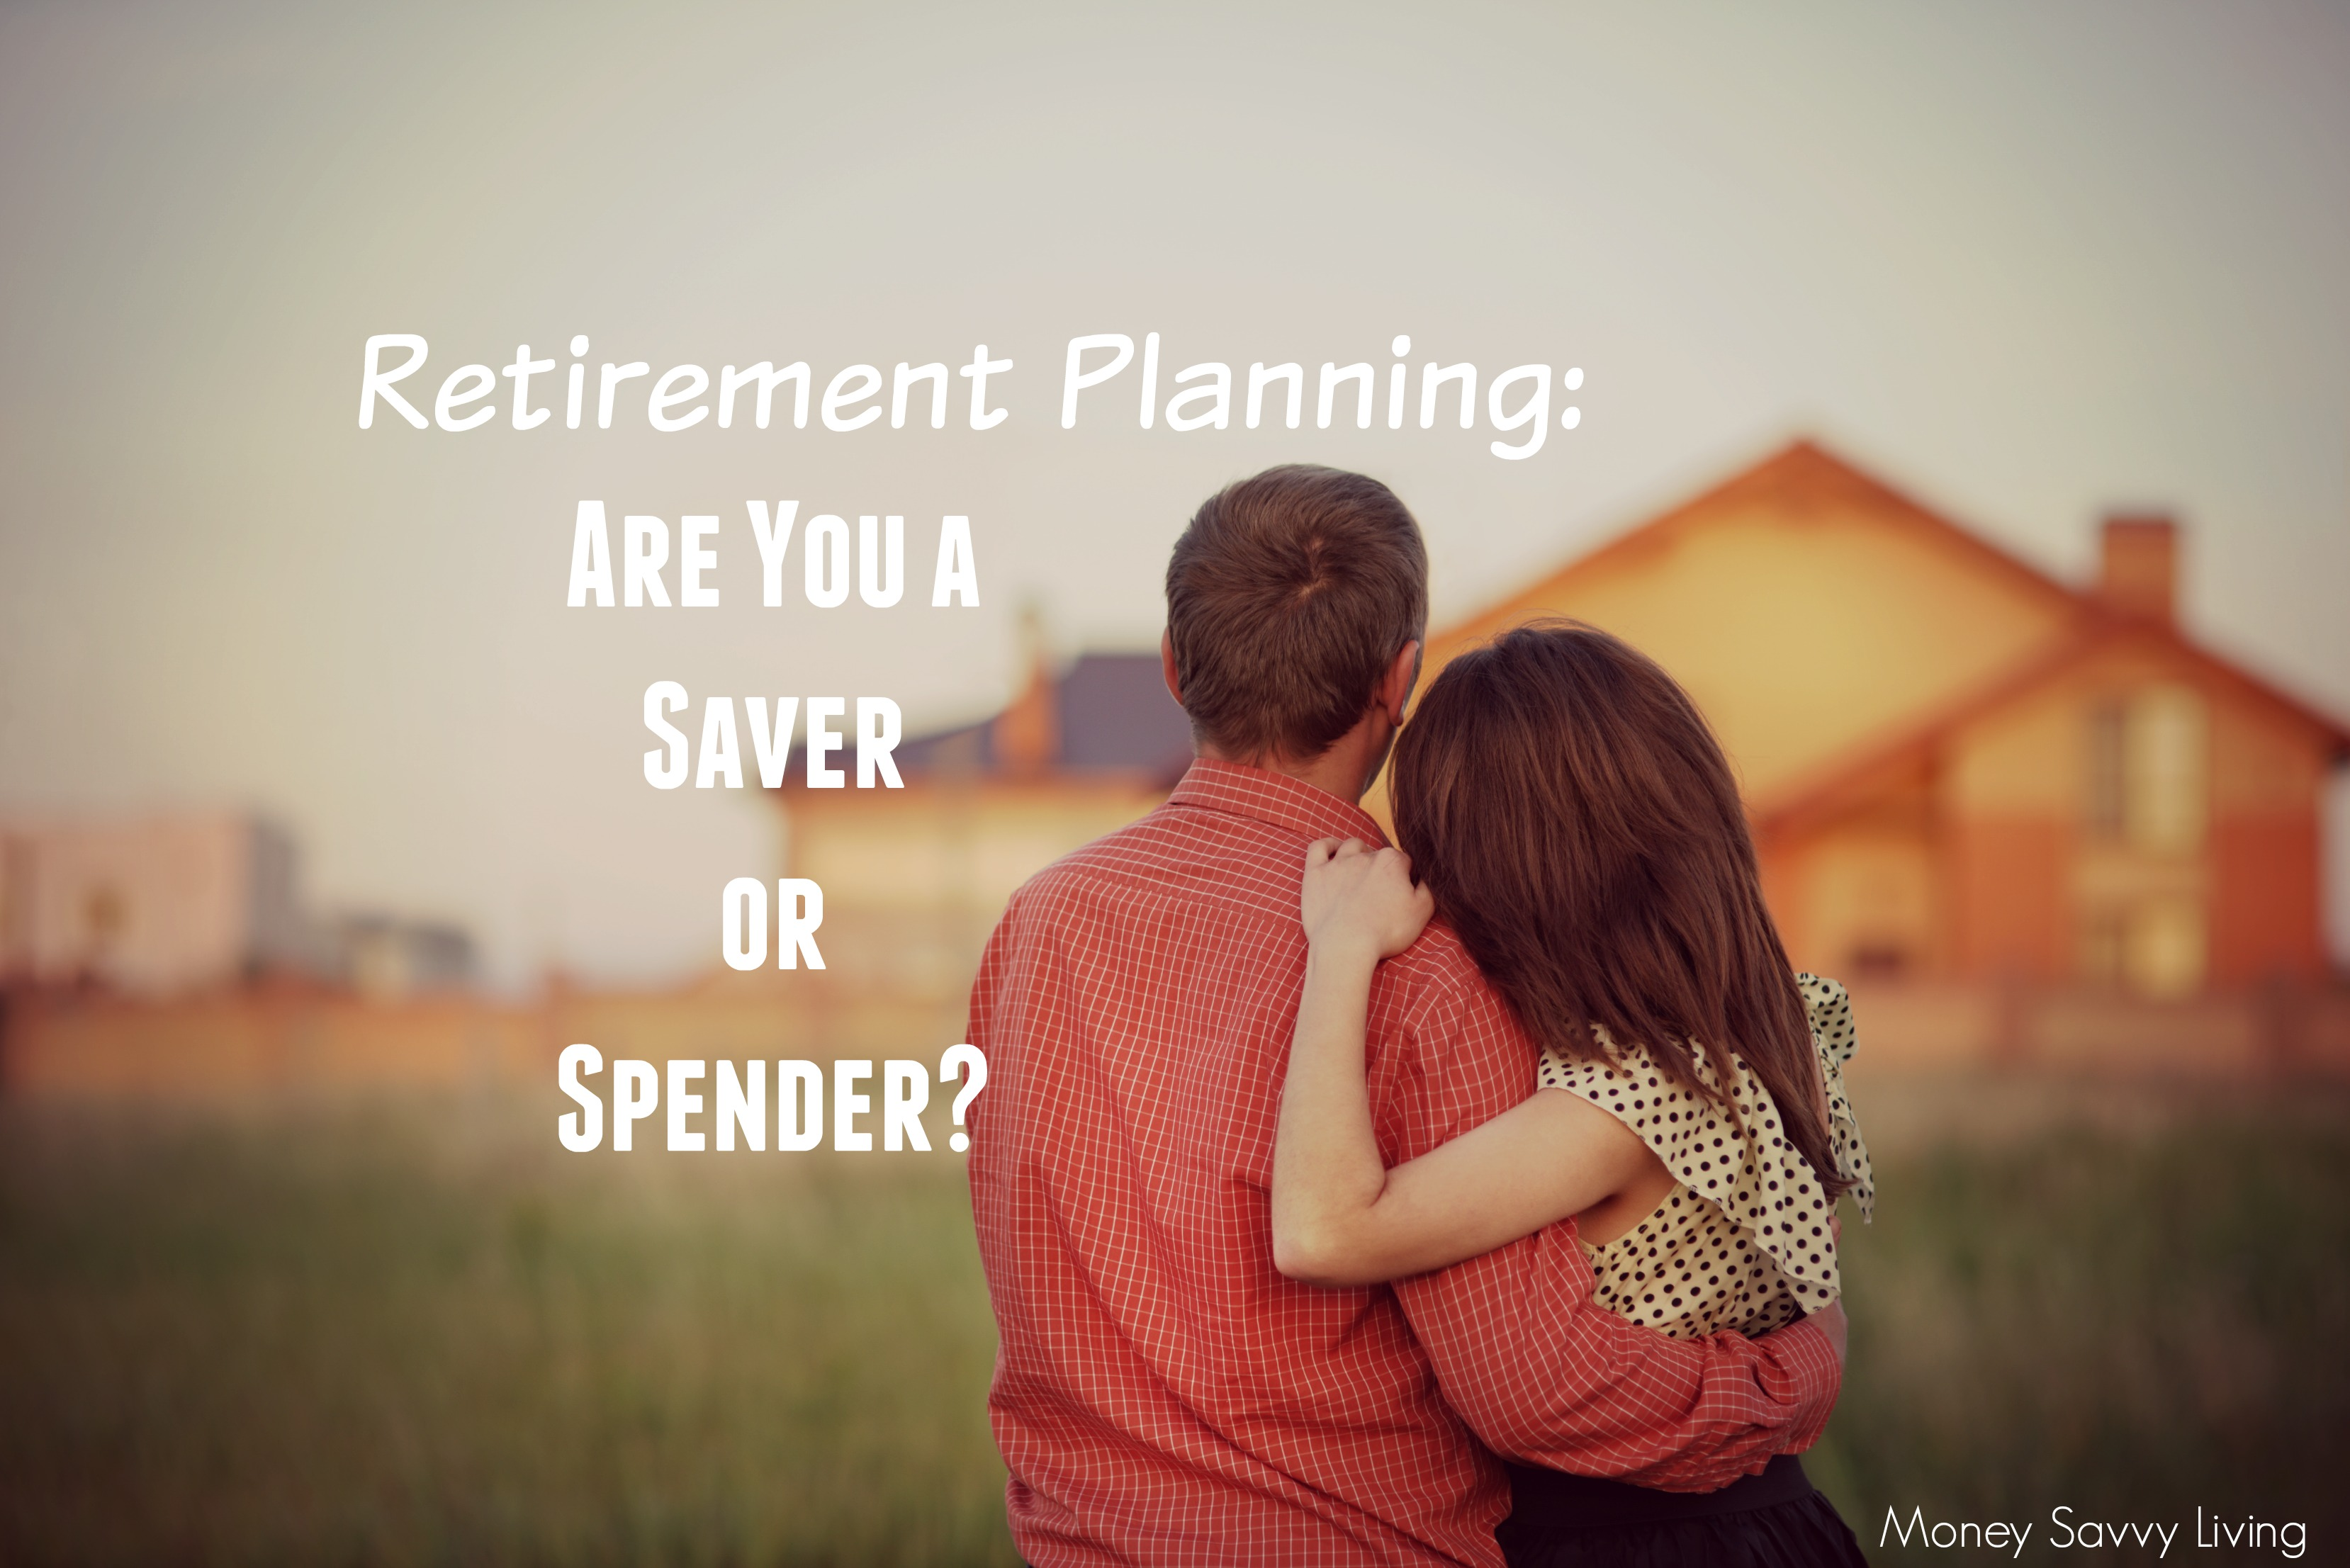 Retirement Planning: Are You a Saver or Spender? | Money Savvy Living